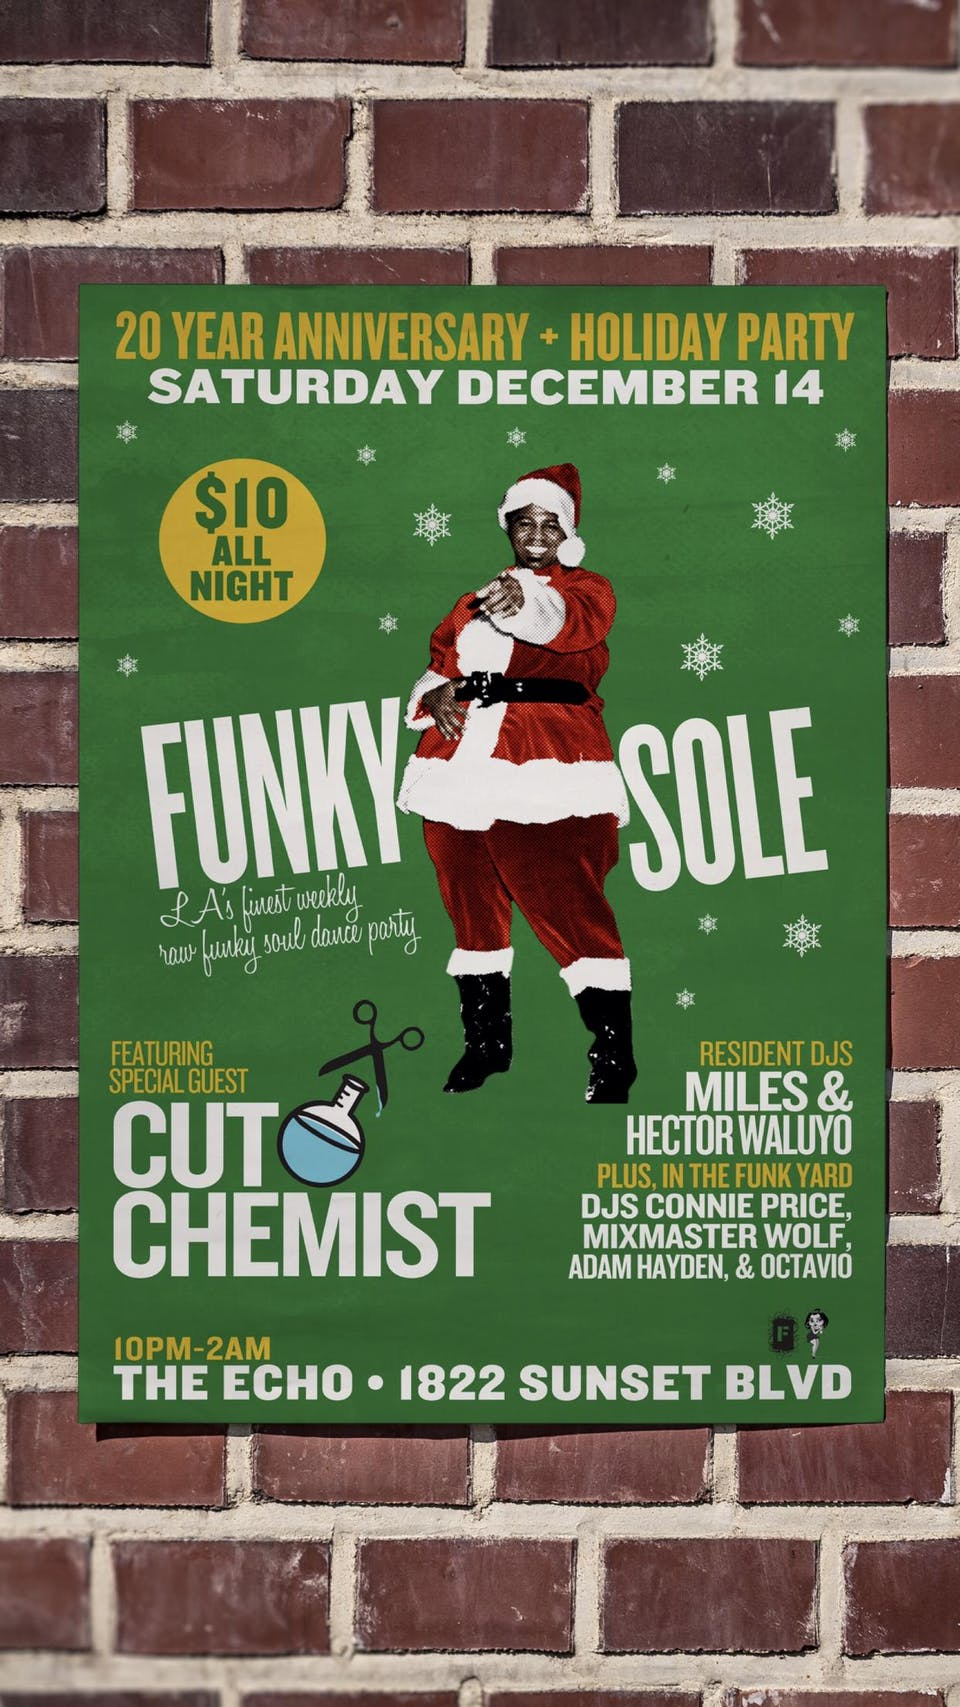 Funky Sole 20 Year Anniversary + Holiday Party with Cut Chemist